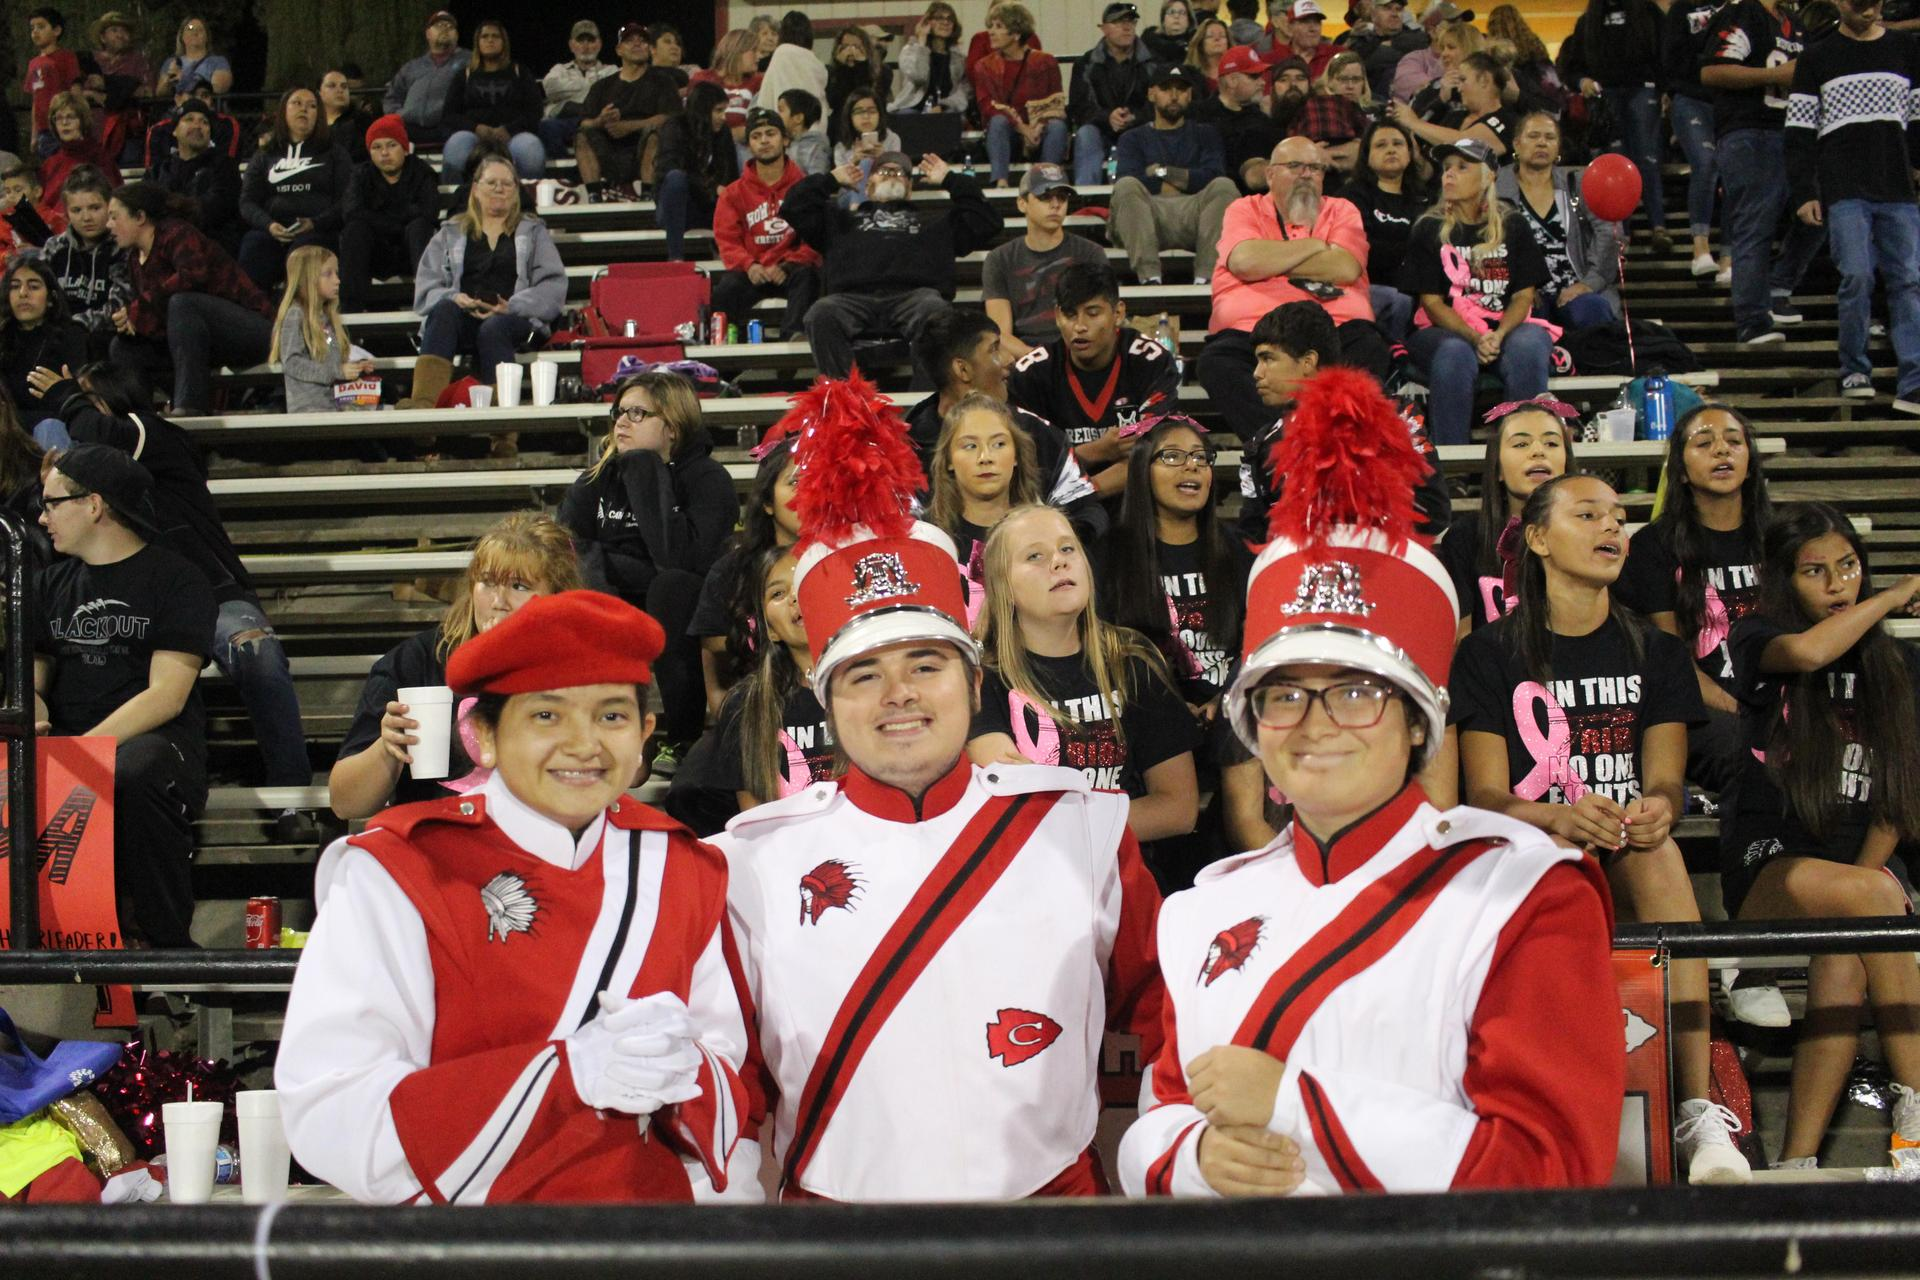 Tribe Band at the Game